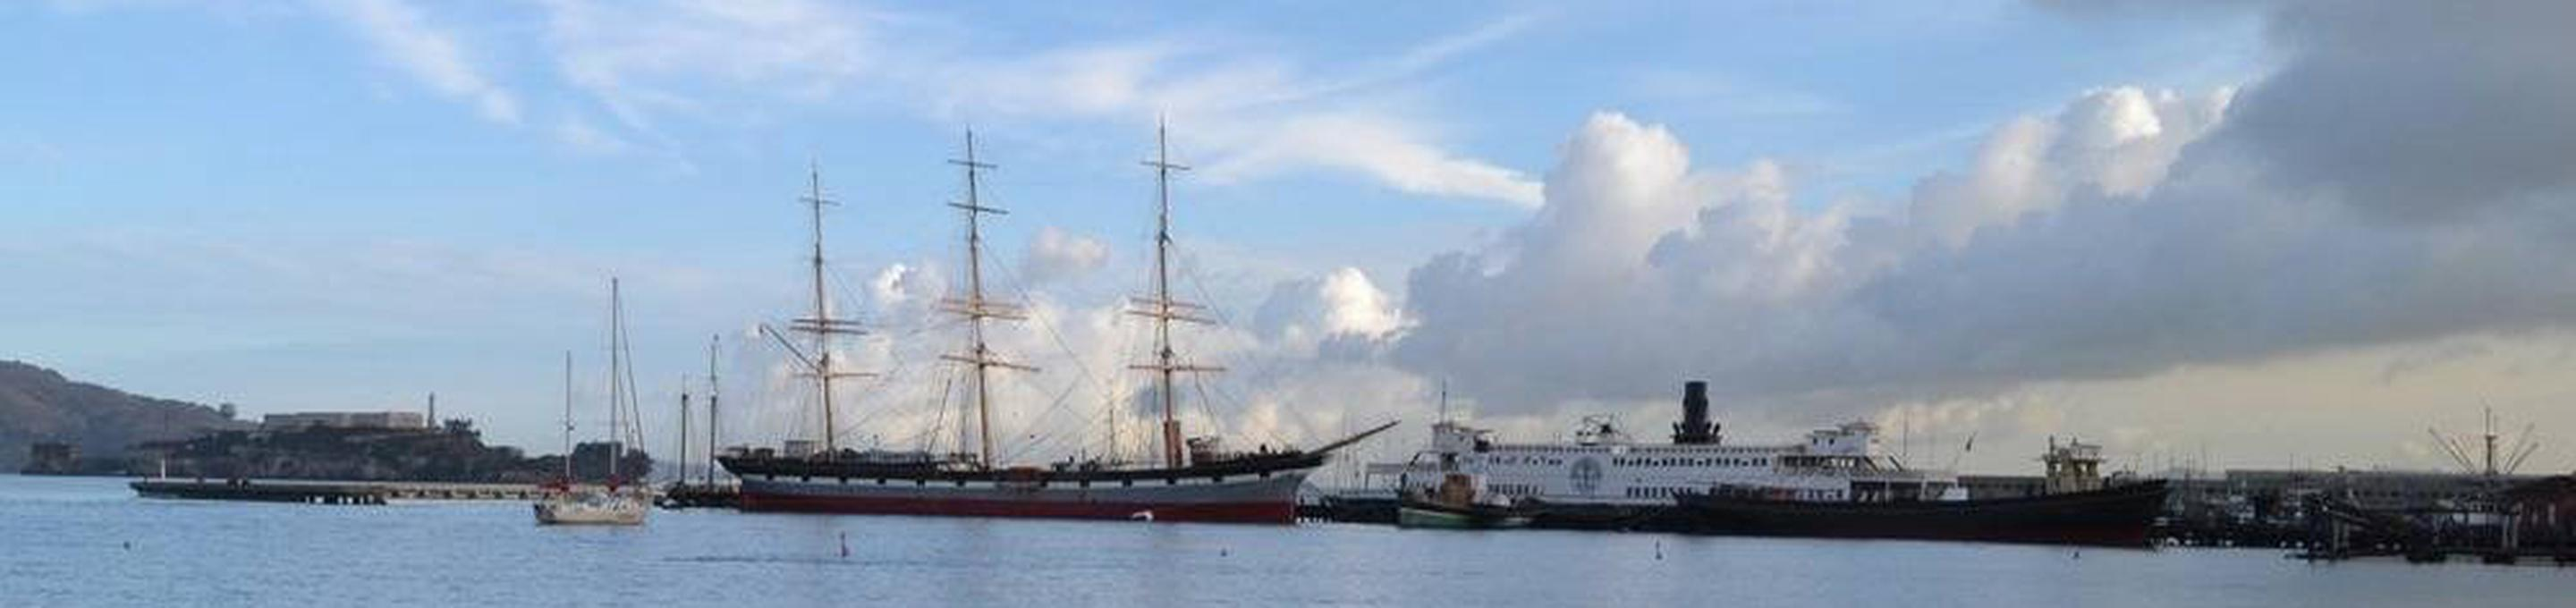 Three-masted, steel-hulled, square-rigged cargo ship Balclutha from Hyde Street PierBalclutha and Clouds on October Morning